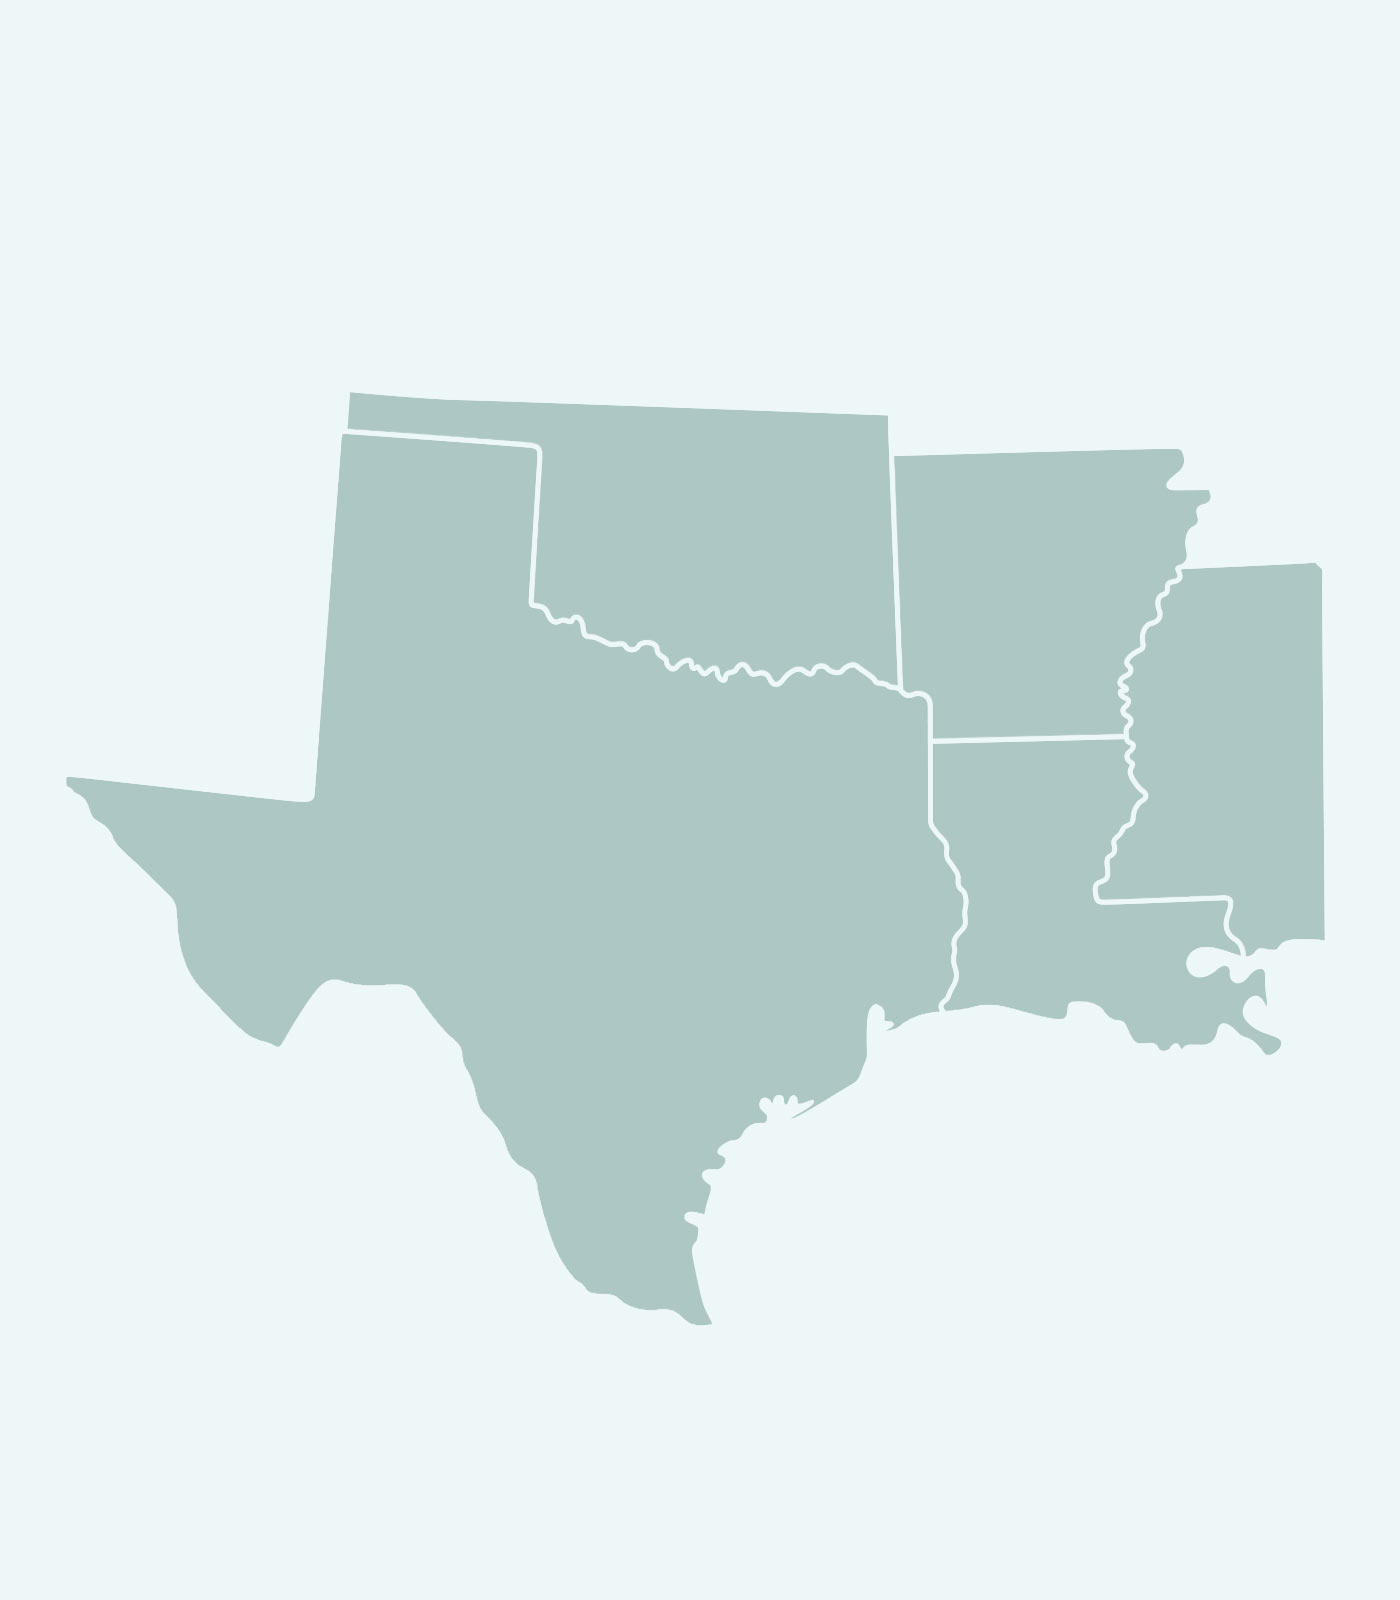 Sales Rep's Map of Texas, Oklahoma, Arkansas, Mississippi, Louisiana for Women's Clothing Line Keren Hart